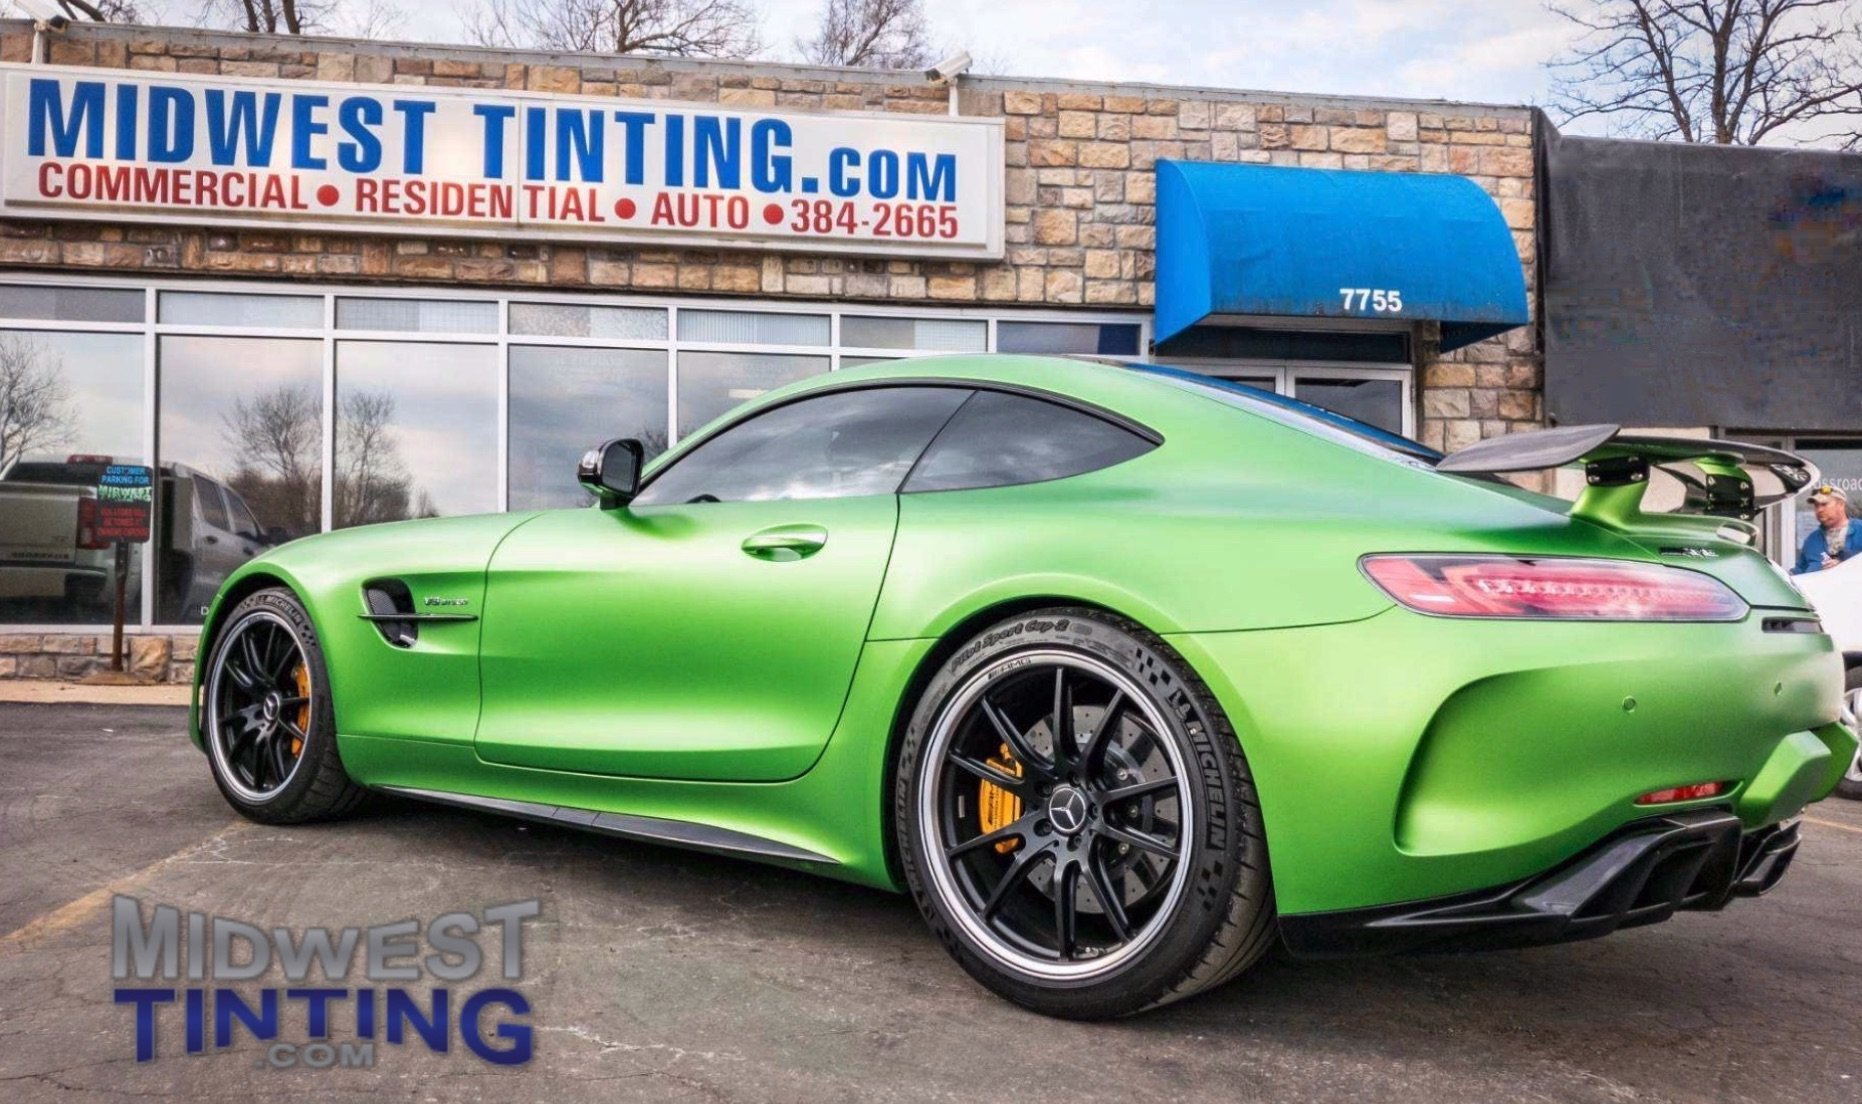 Spring Into The Season With a Free Window Tint Upgrade from Midwest Tinting - Automotive Window Tinting in Kansas City